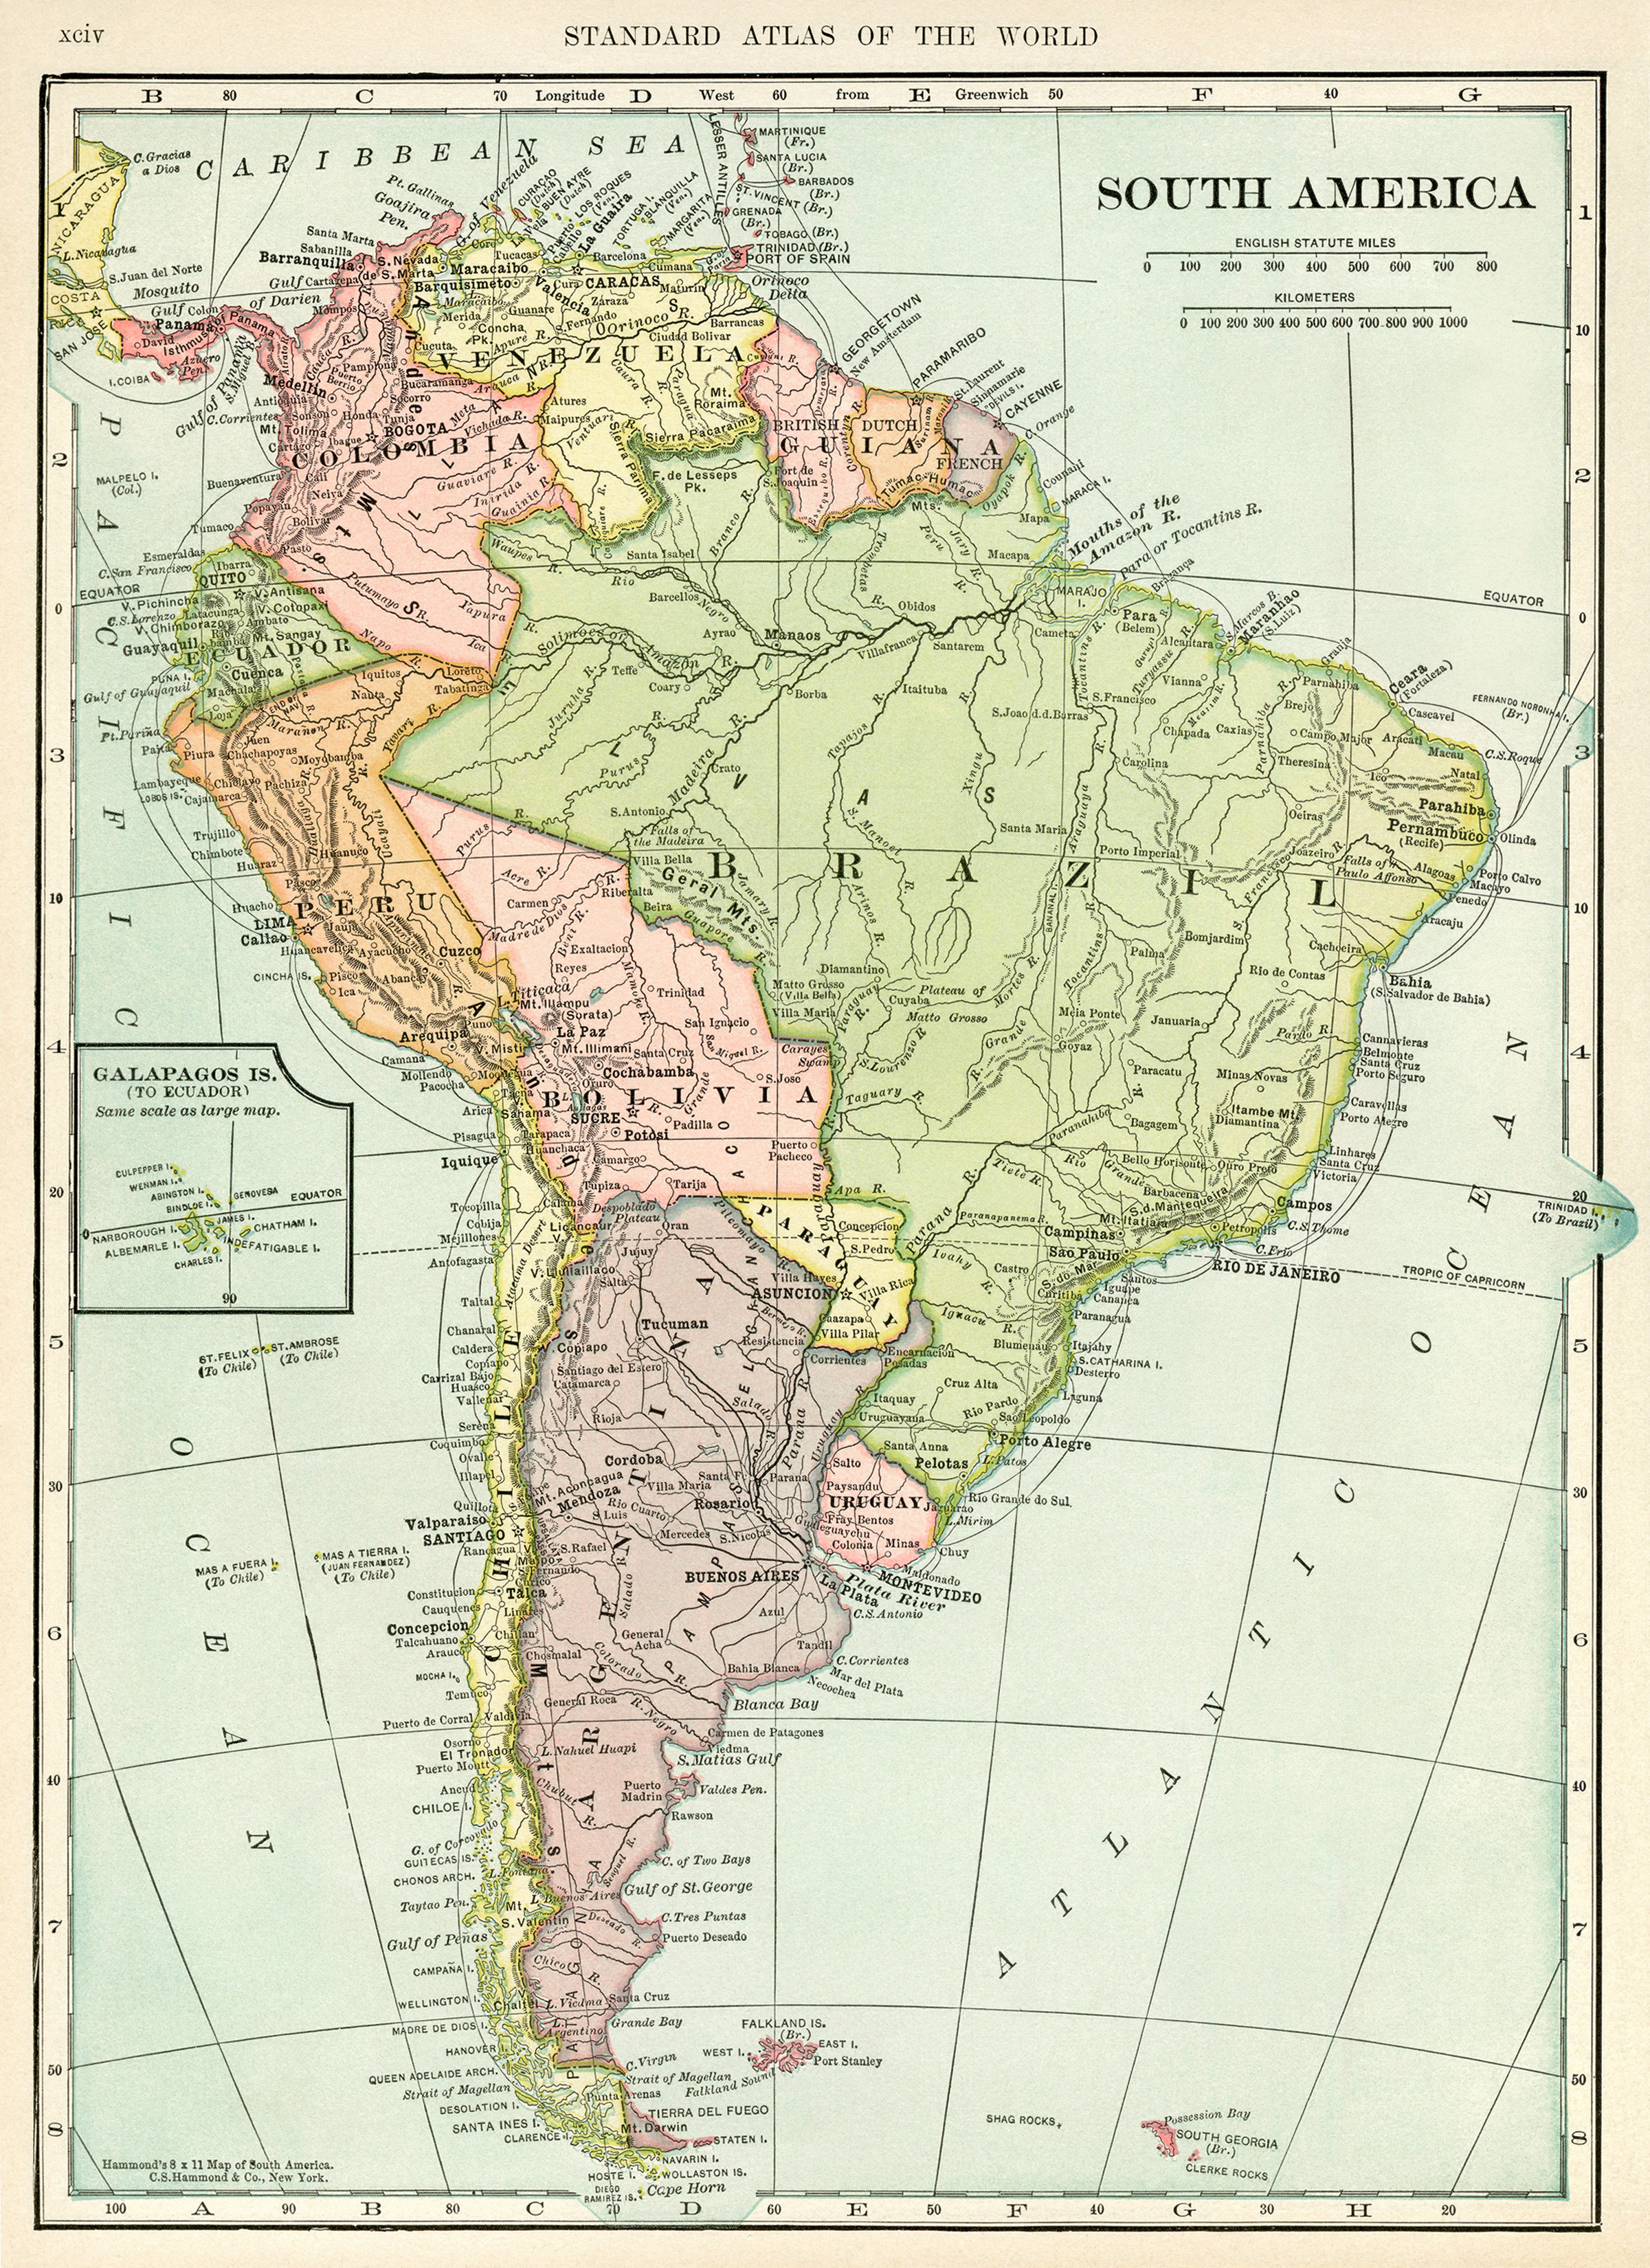 Vintage Map of South America - Old Design Shop Blog on map of france, map of china, map of north carolina, map of paraguay, map of bolivia, map of ecuador, map of belize, map of aruba, map of nicaragua, map of western hemisphere, map of dominican republic, map of canada, map of asia, map of europe, map of the world, map of venezuela, map of guatemala, map of germany, map of italy, map of us, map of africa, map of honduras, map of australia, map of florida, map of texas, map of mexico, map of antarctica, map of argentina, map of costa rica, map of the americas, map of georgia, map of usa, map of united states, map of middle east, map of bahamas, map of guyana, map of caribbean,